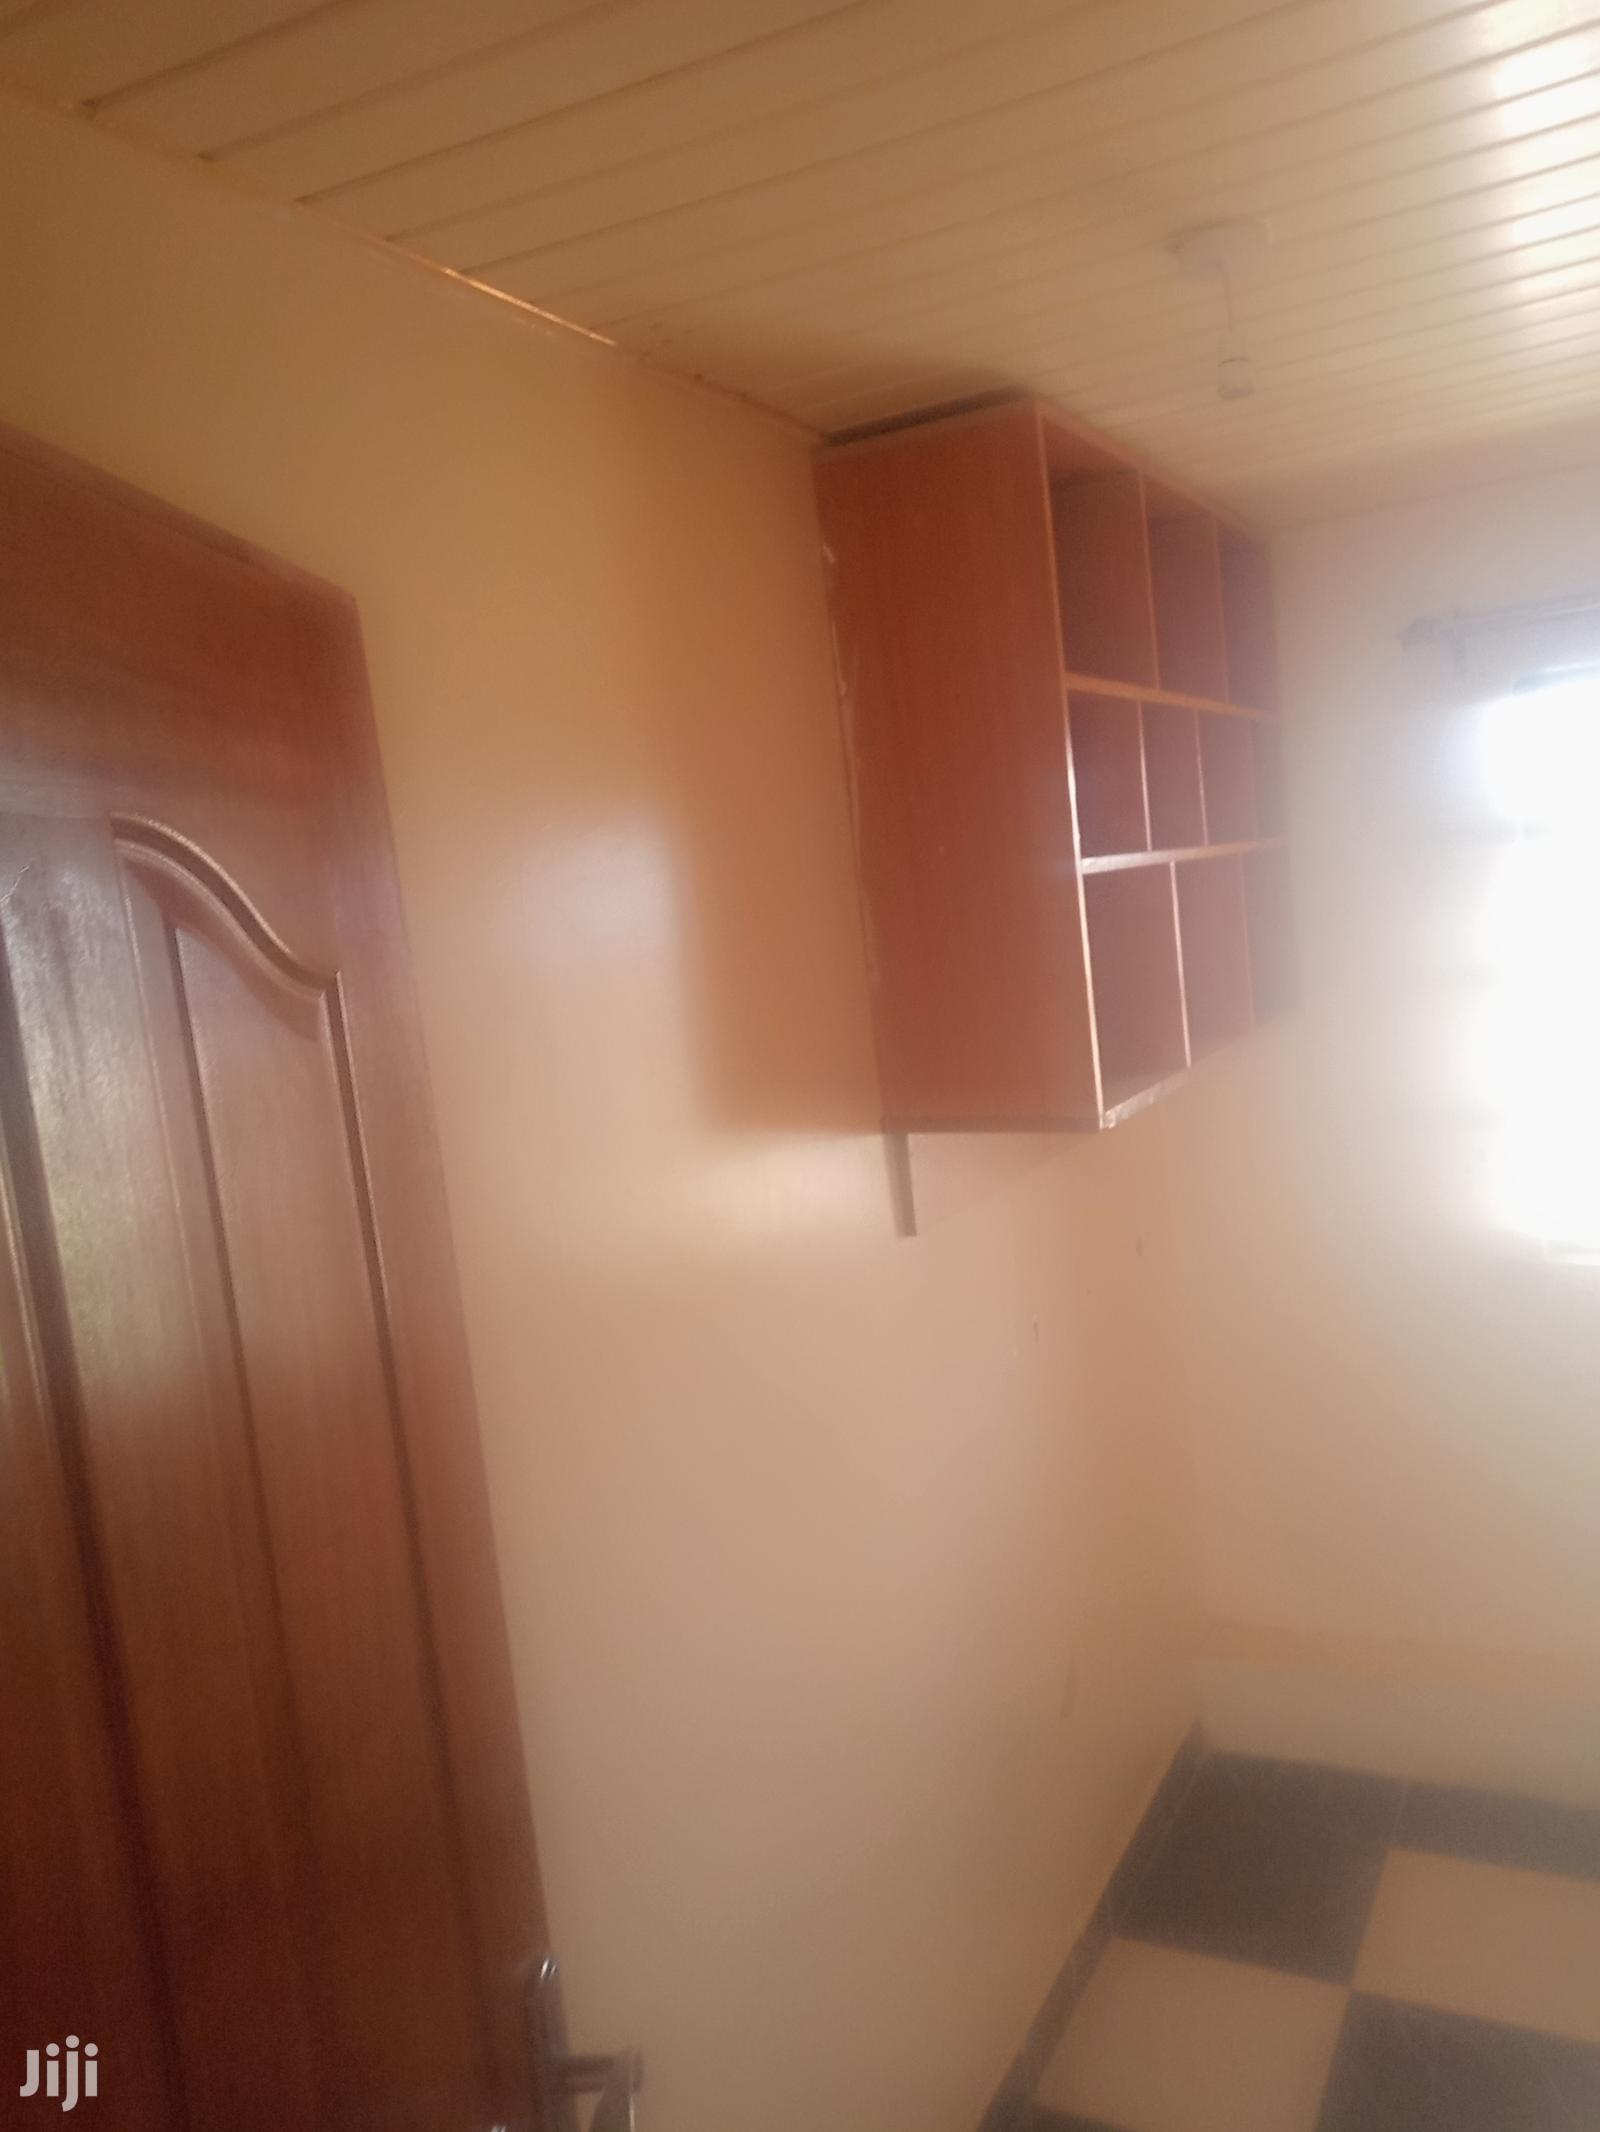 Archive: 4bedroom All Ensuite With Dsq Mansion In Kitengela At 50k